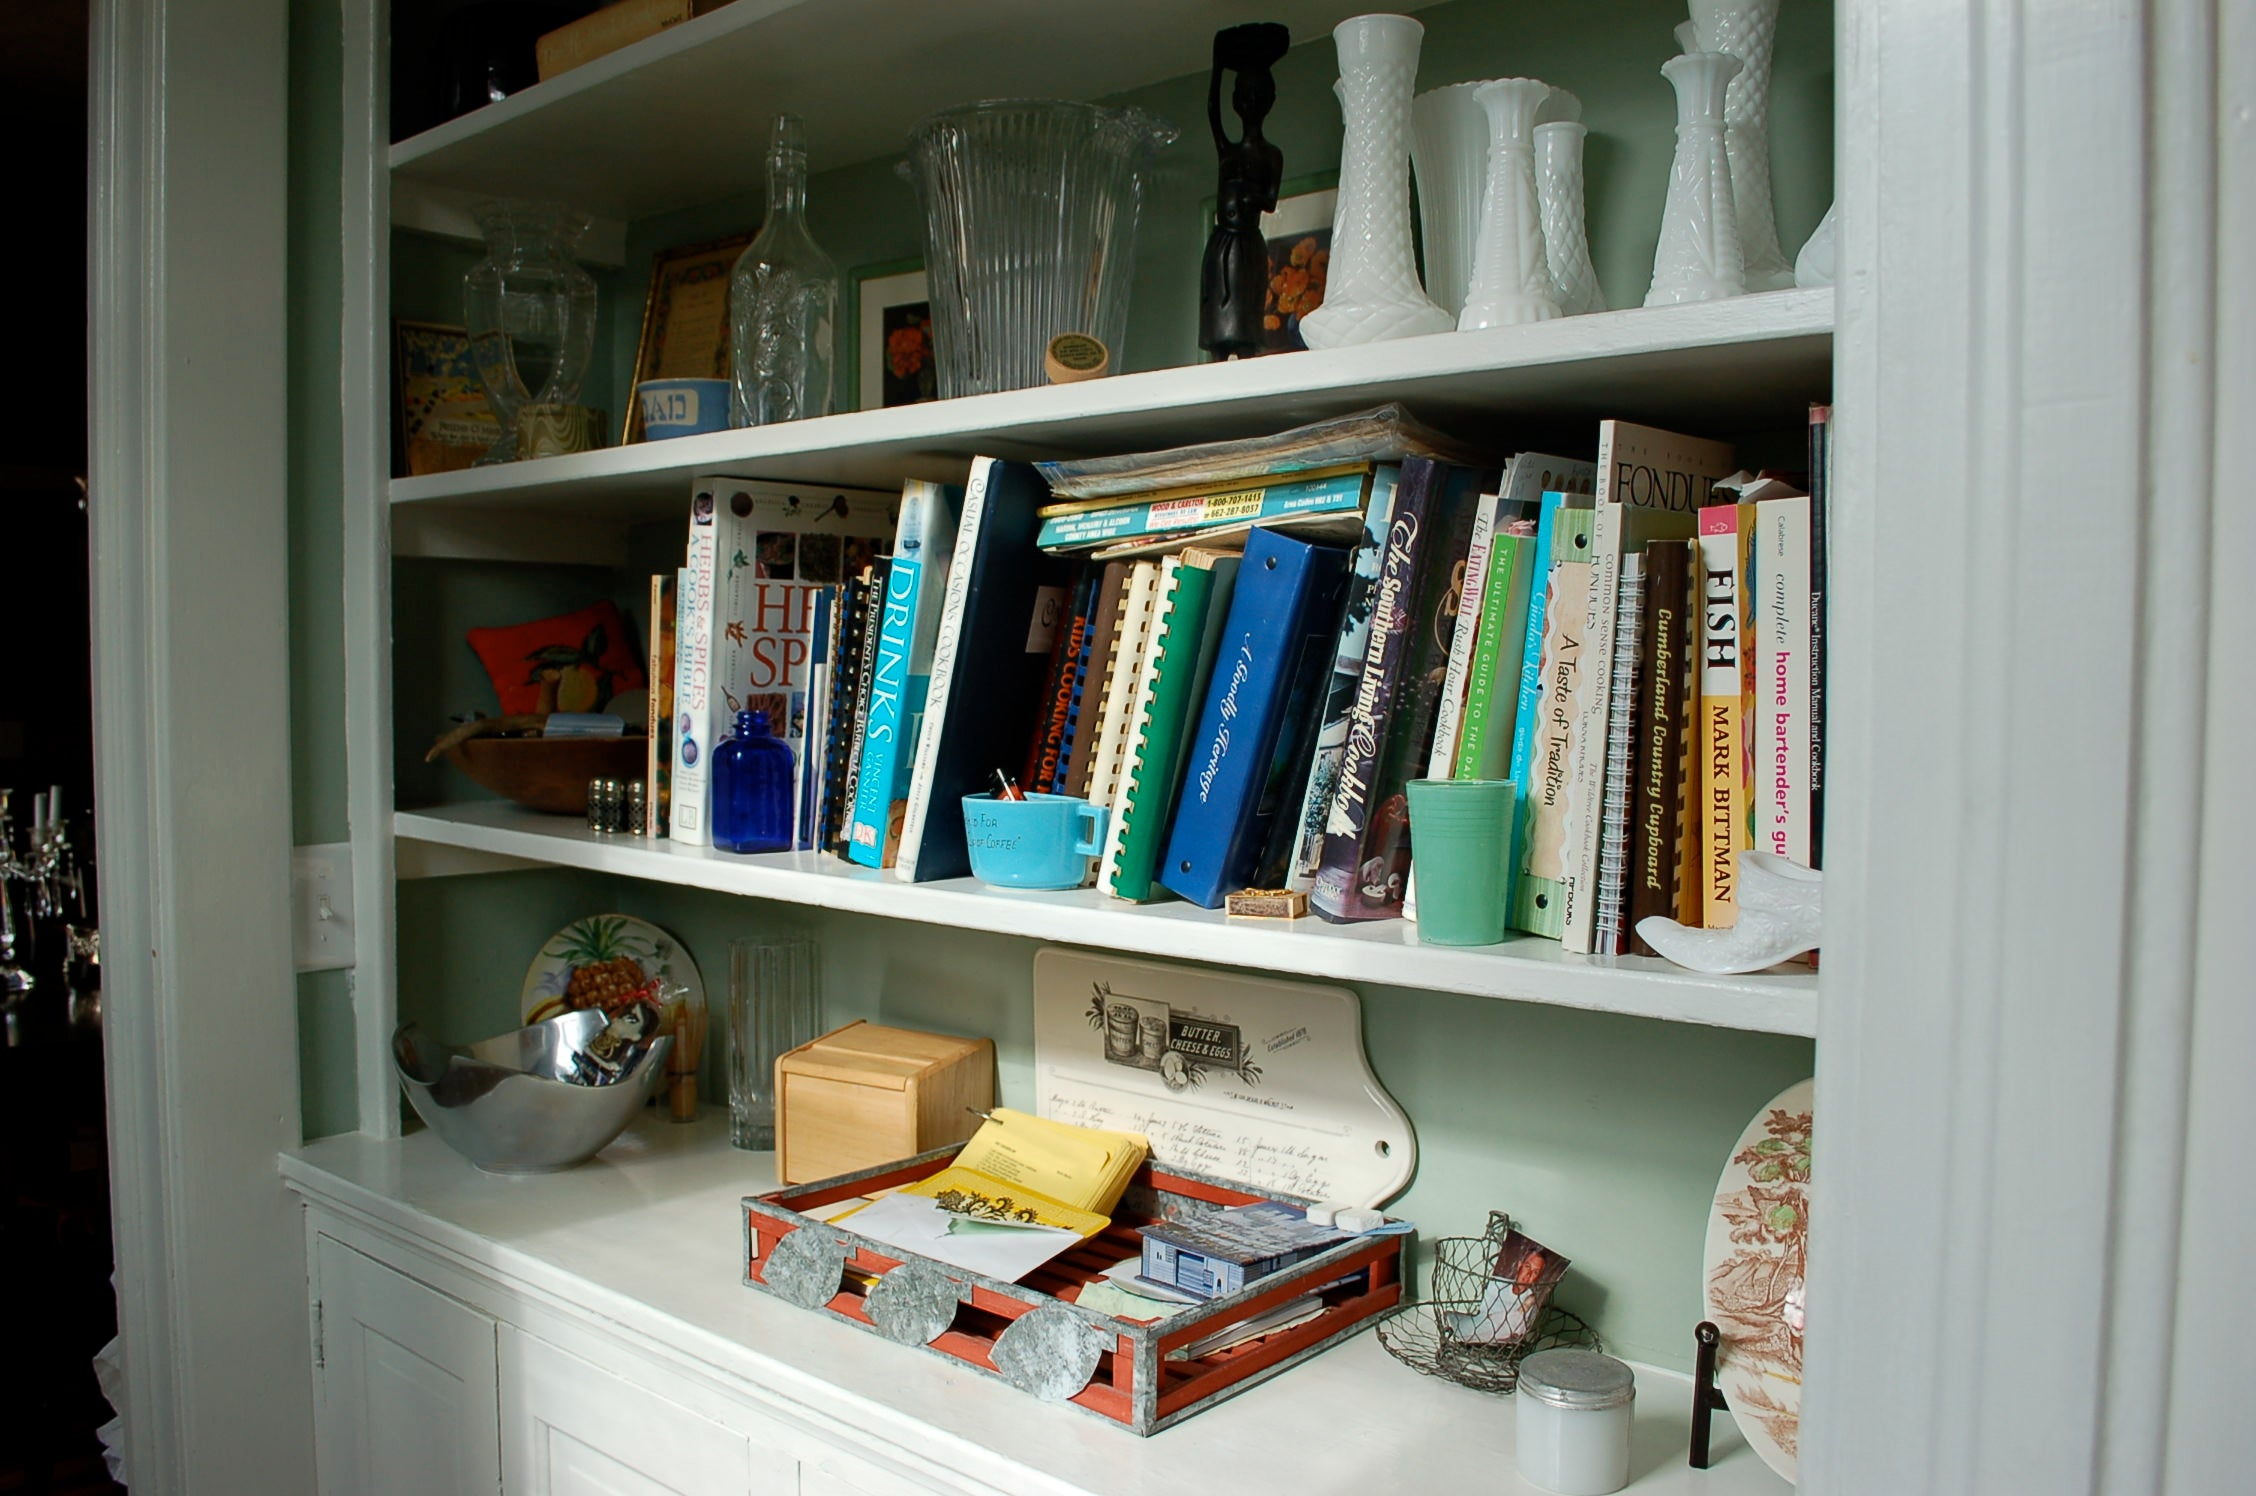 unorganized kitchen, book shelves, books, trinkets